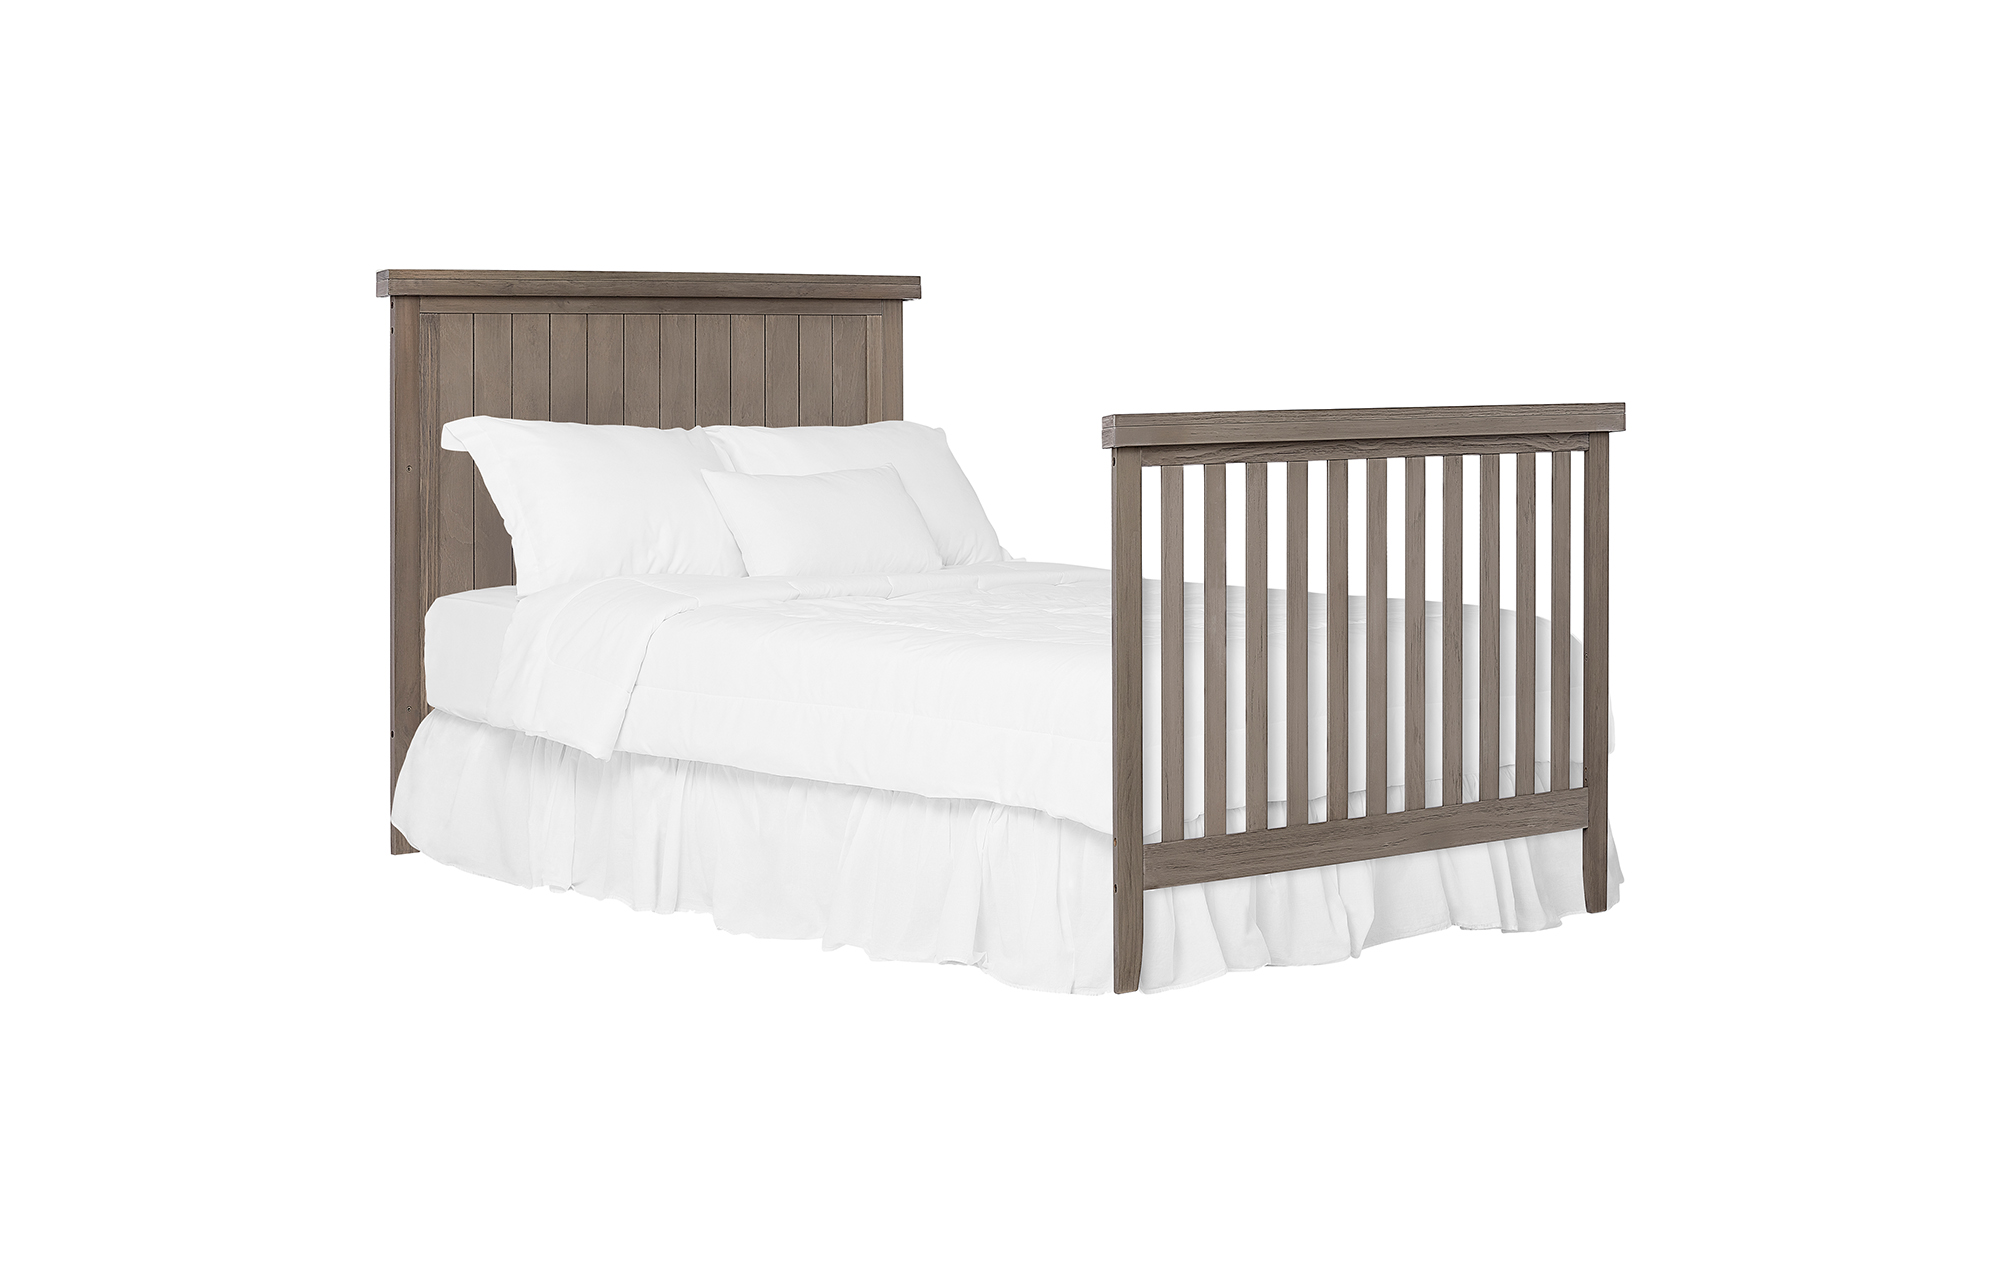 772BR-OAKGY Maple Full Size Bed with Headboard